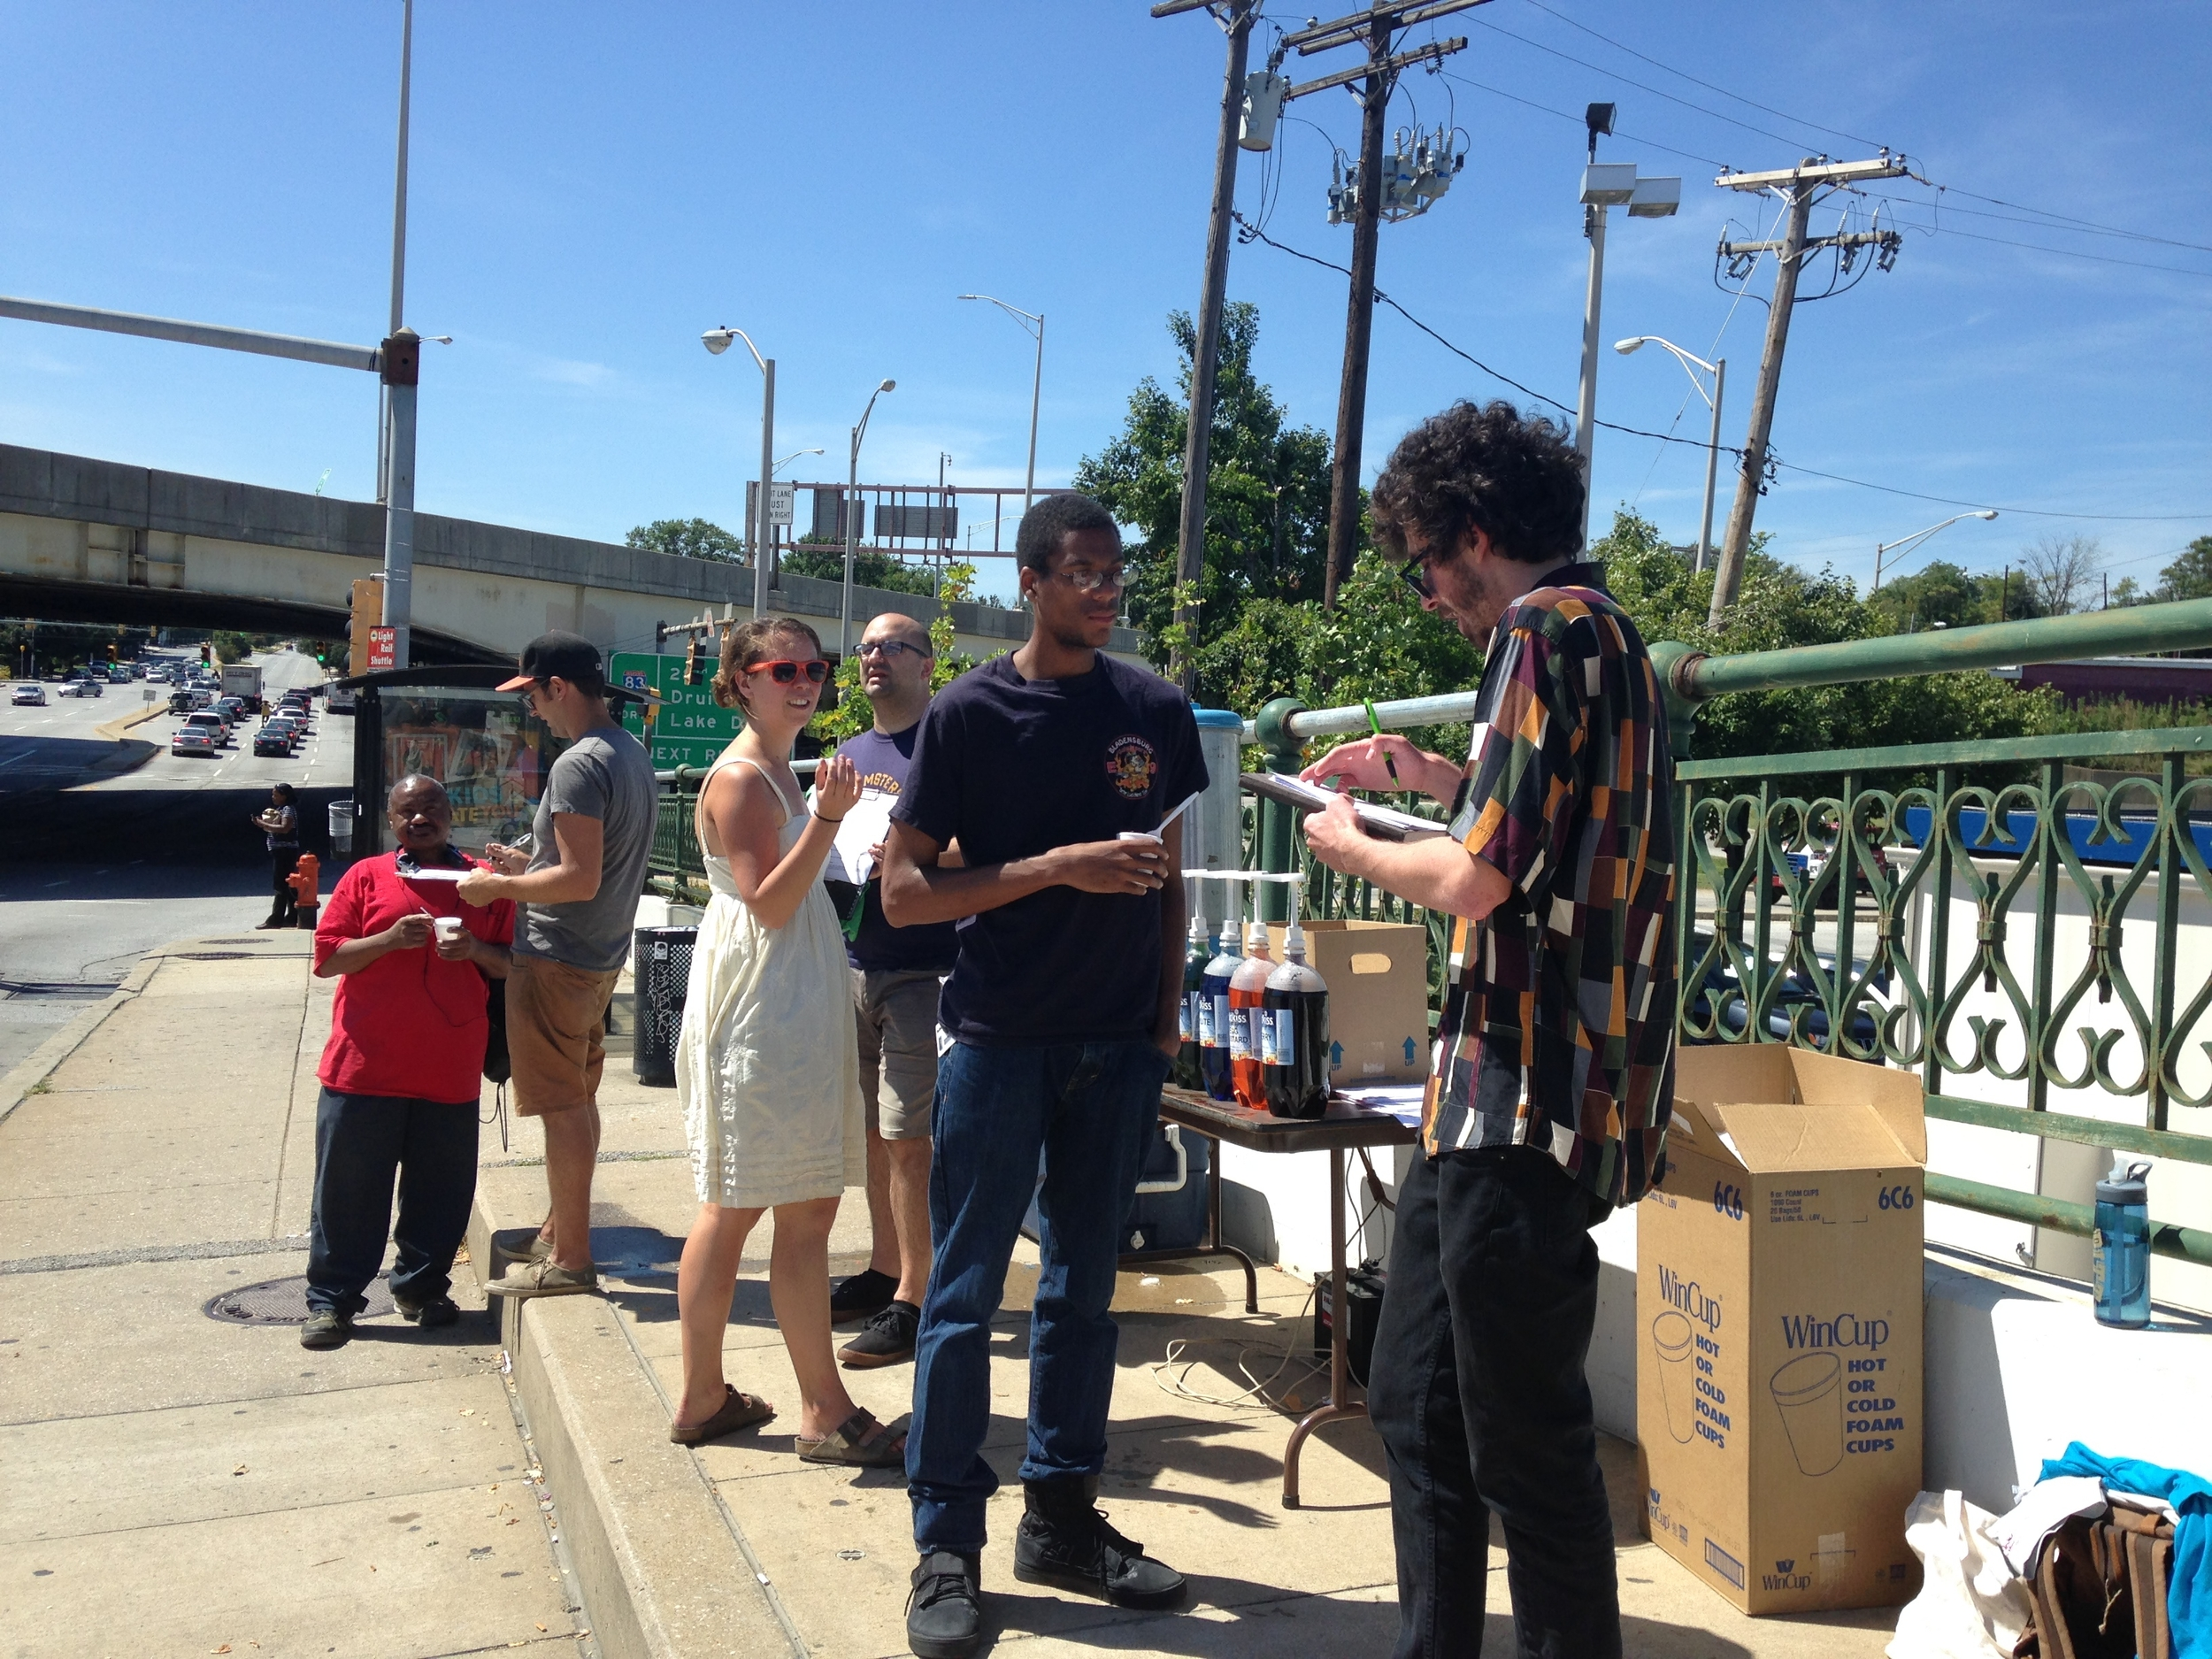 One of the crews collecting input for the streetscape plan. This group is meeting people on the North Avenue bridge.